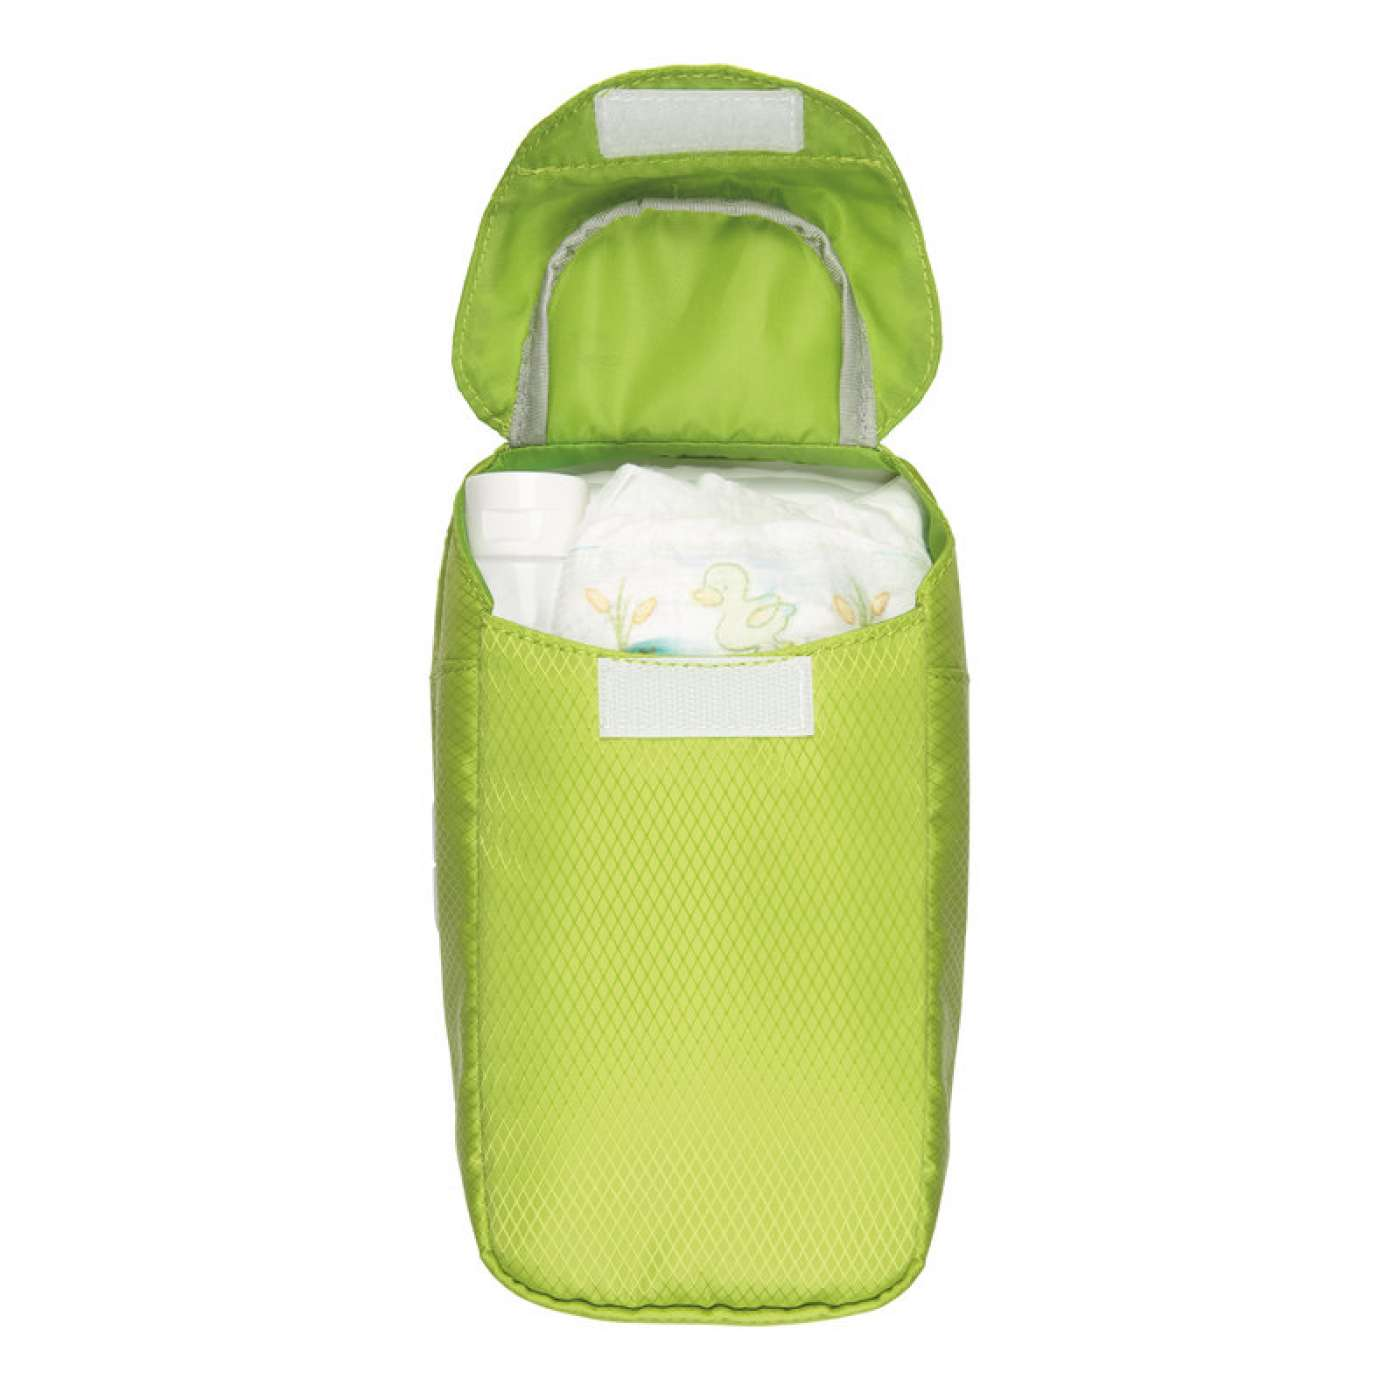 oxo tot on the go travelling wipes dispenser with diaper pouch storage bag 外出方便湿巾收纳盒含尿不湿收纳袋